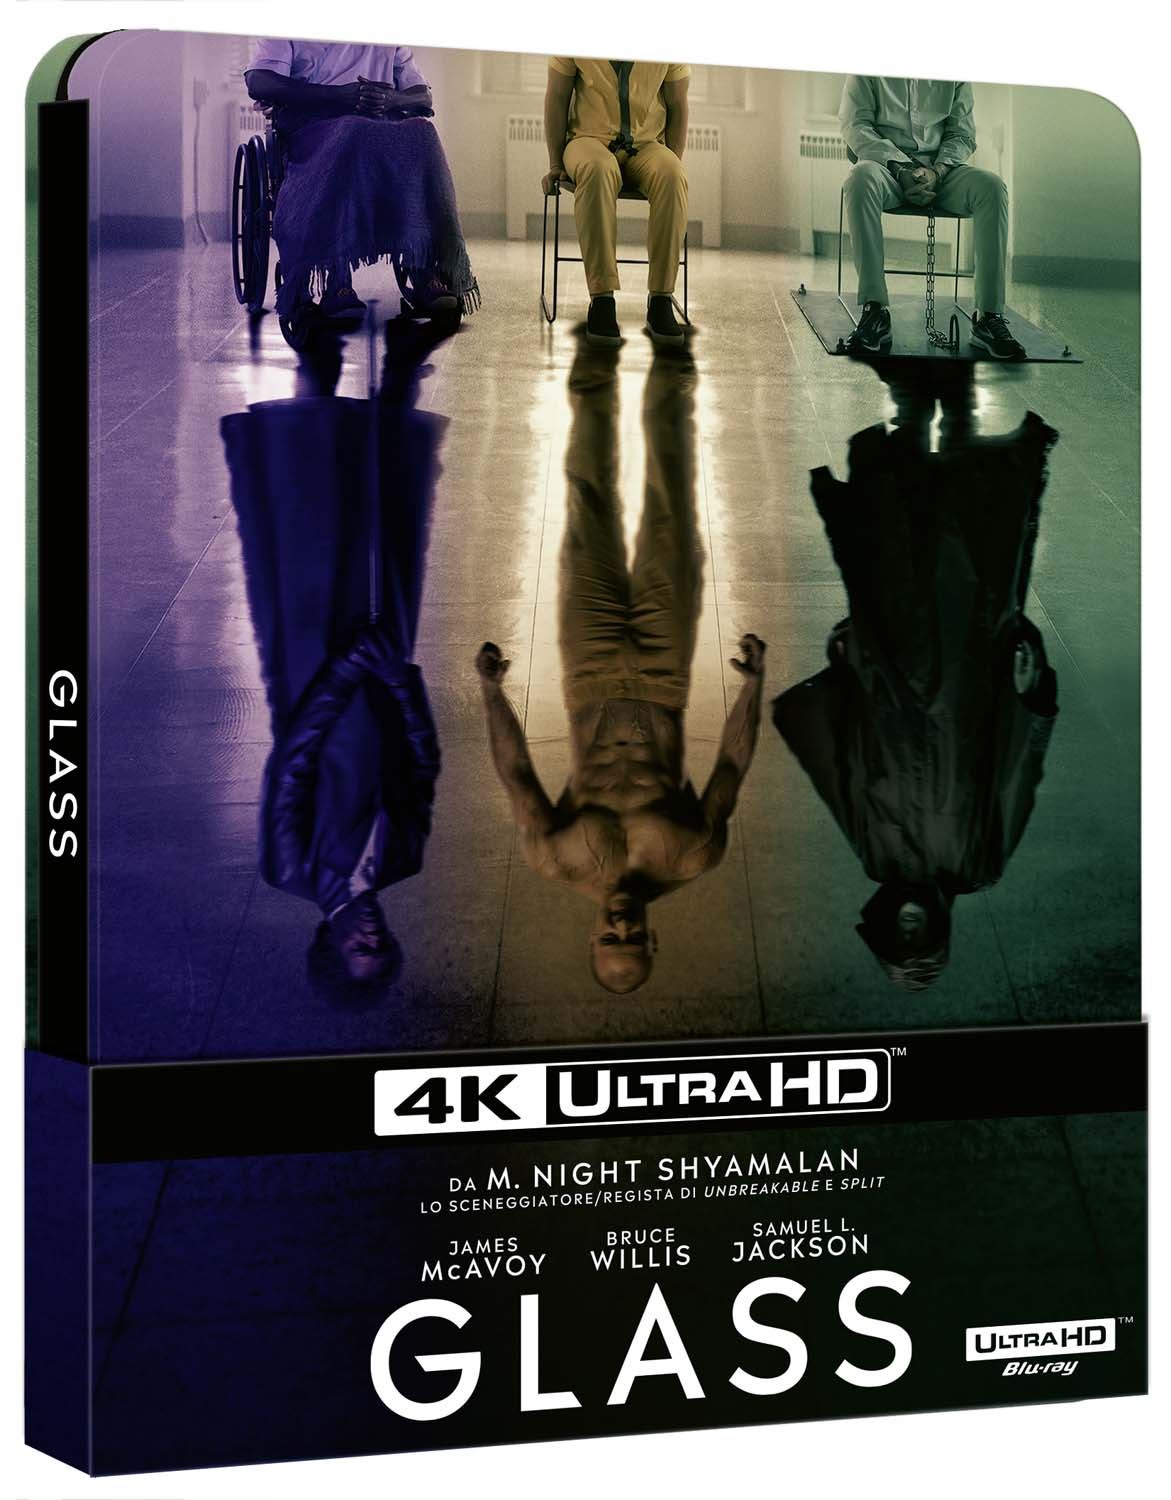 GLASS (STEELBOOK) (4K ULTRA HD+BLU-RAY)